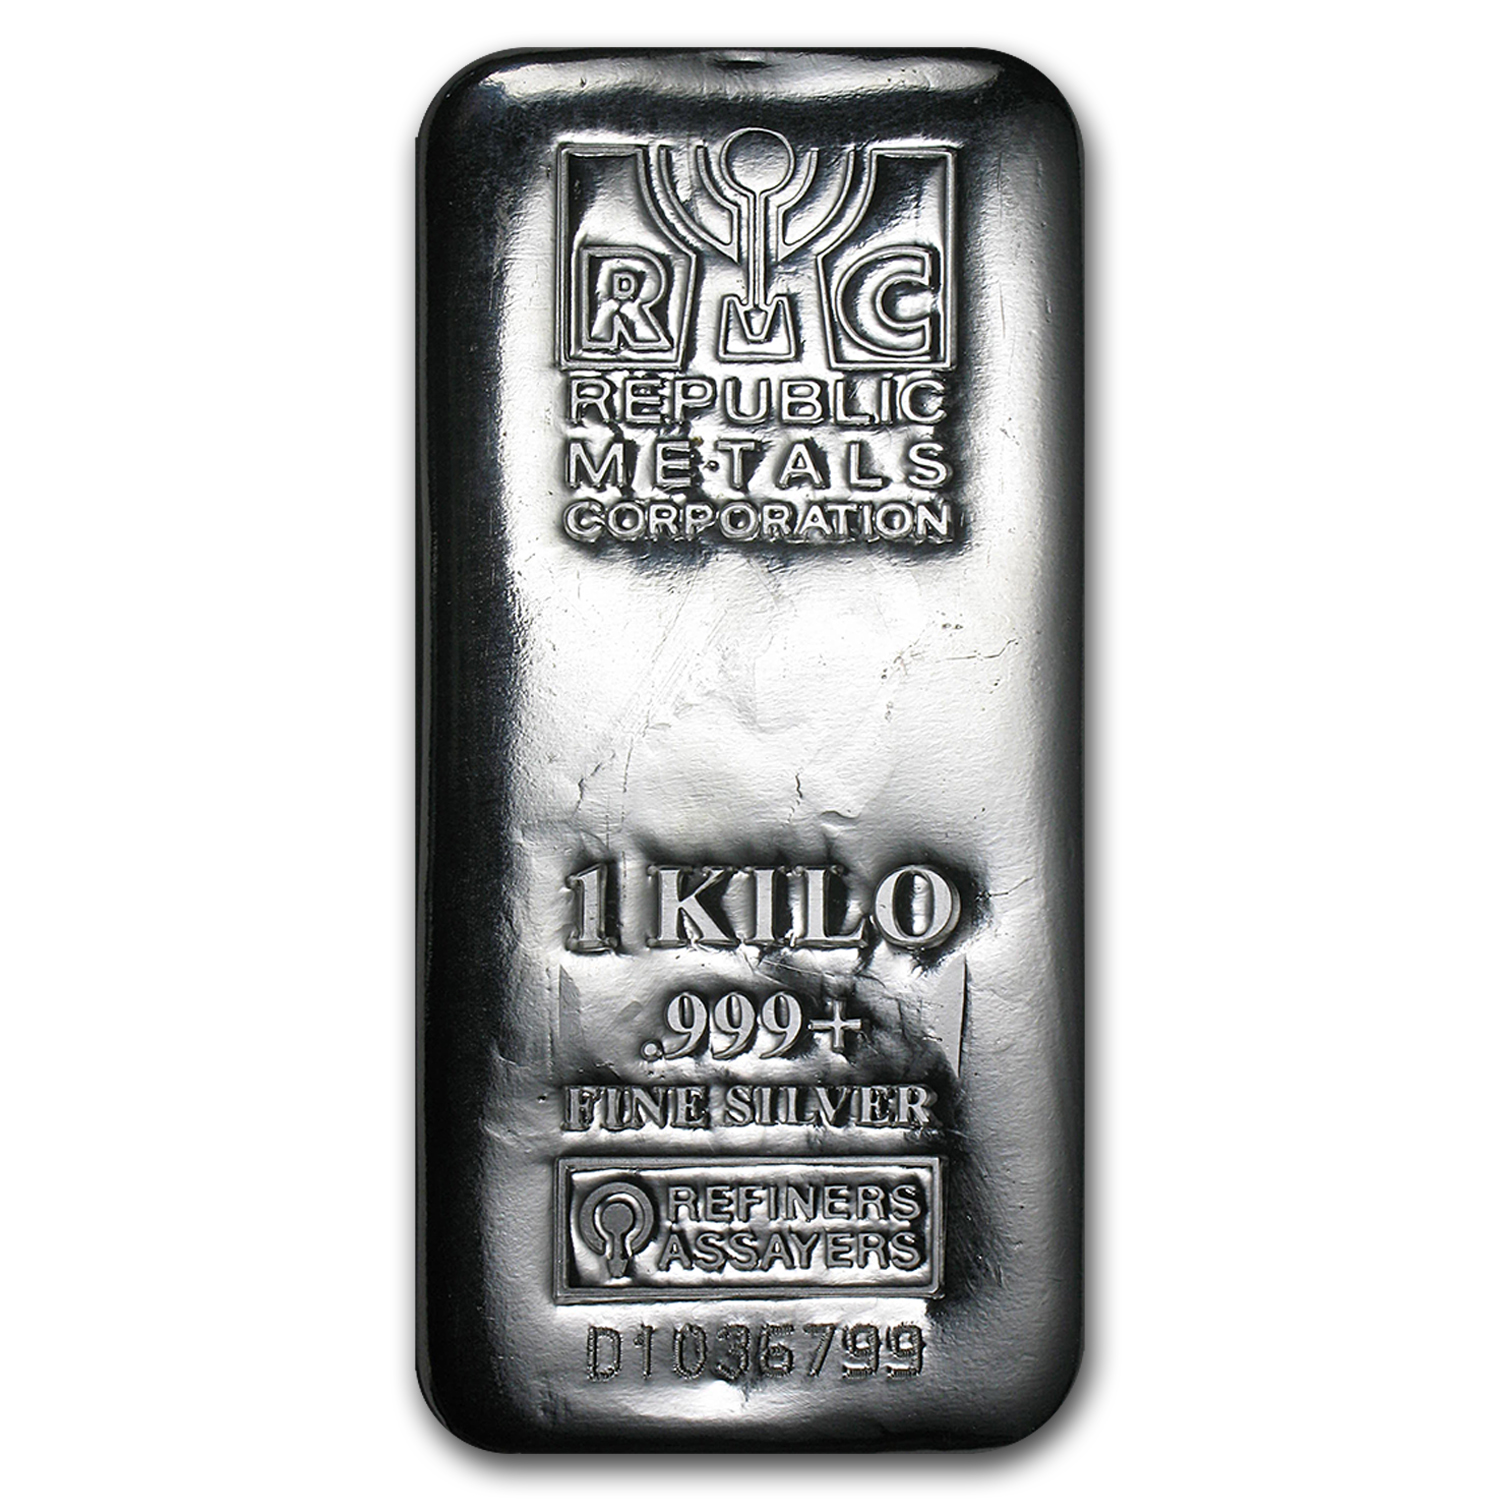 1 kilo Silver Bar - Republic Metals Corporation (RMC)